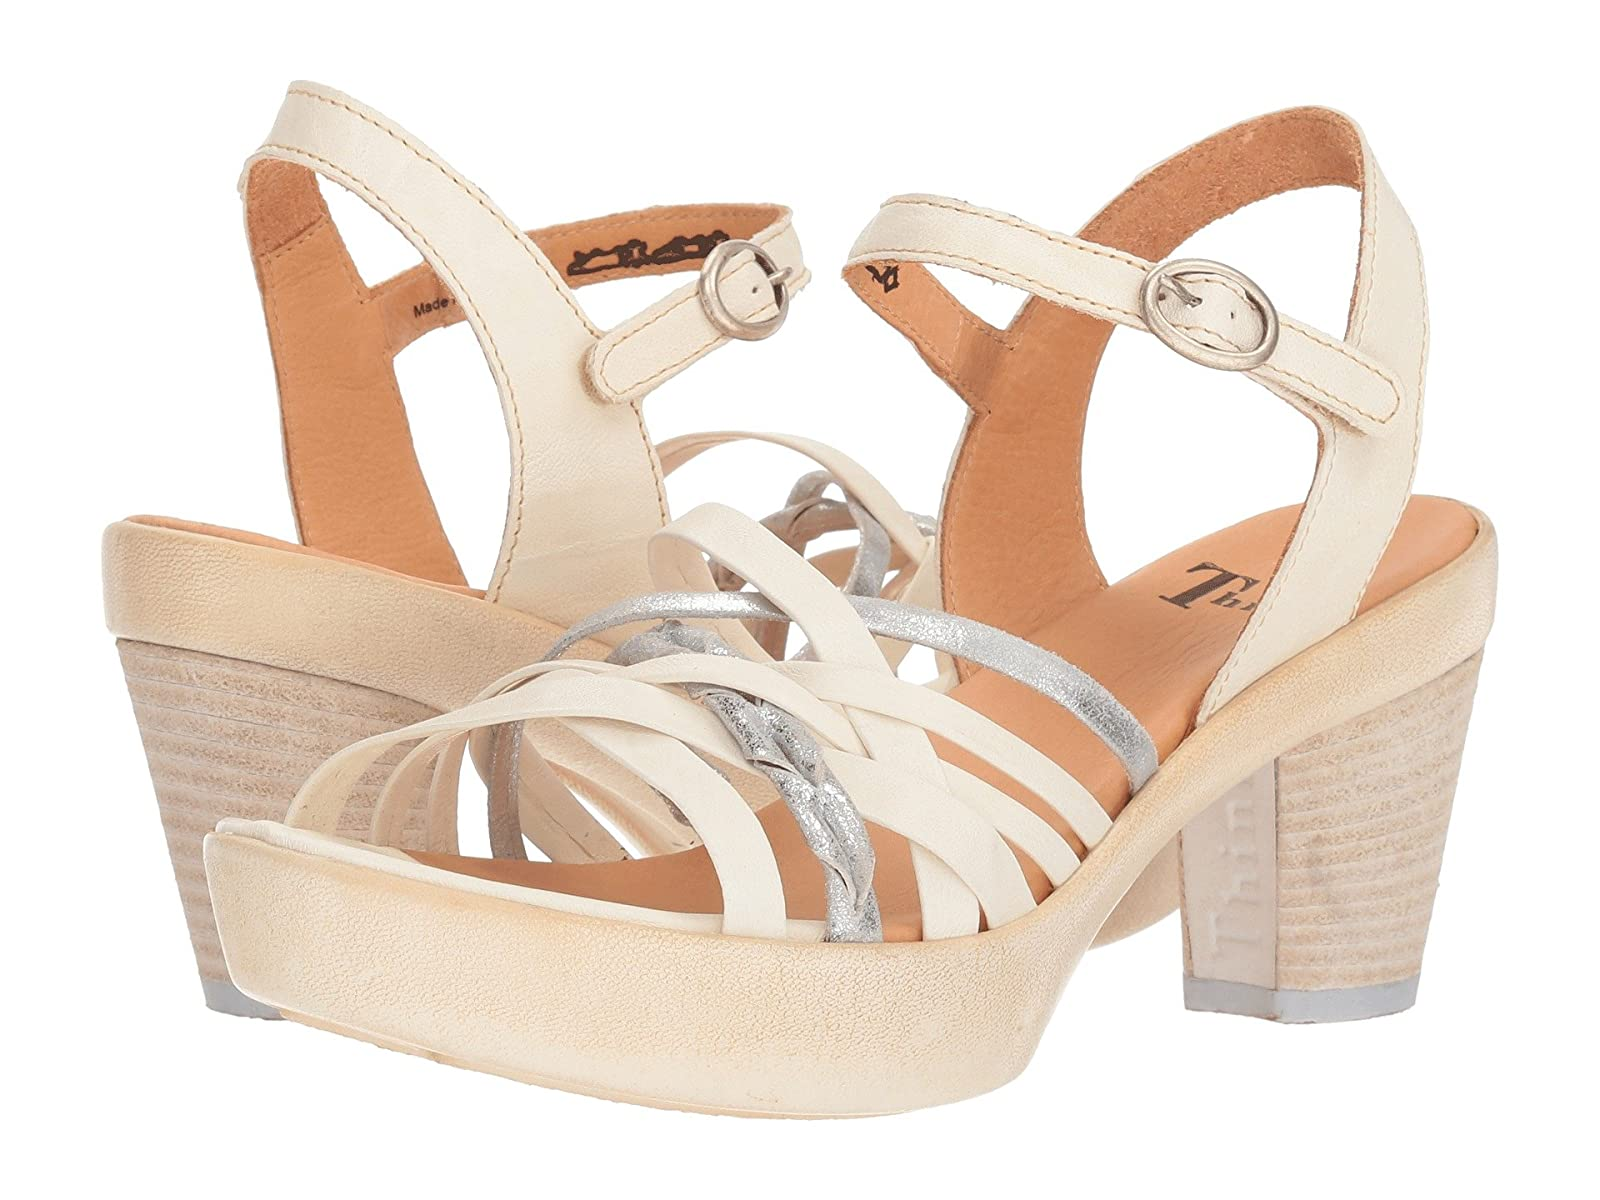 Think! Gspusal Strappy Sandal - 82535Cheap and distinctive eye-catching shoes